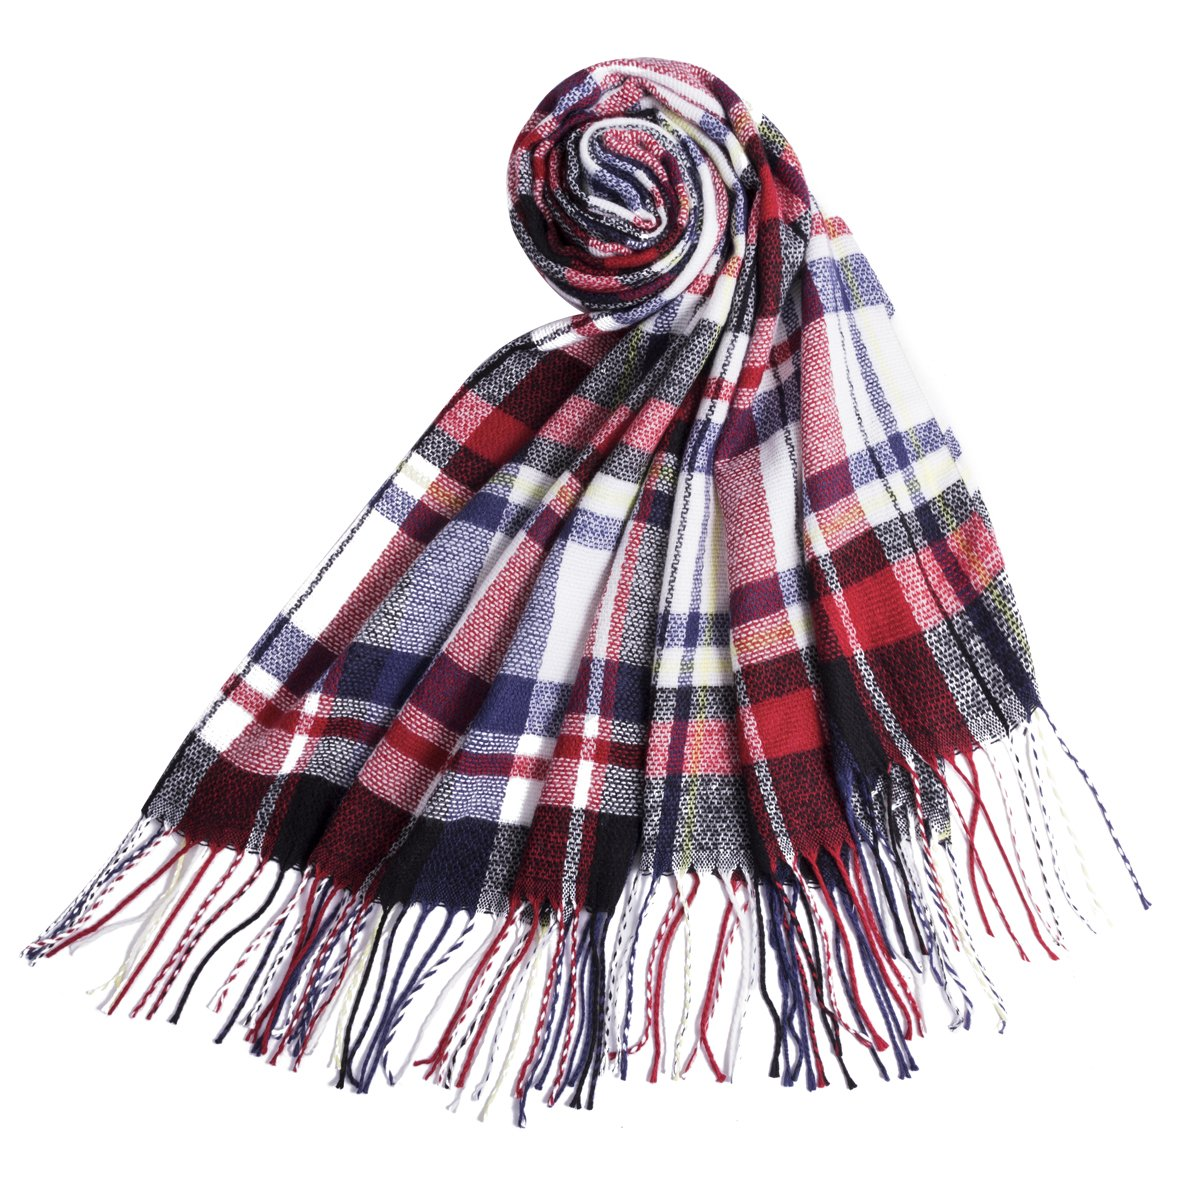 Plaid Blanket Scarf, Square Scarves Warm Tartan Checked Shawl Oversize Cape Fashion Scarves